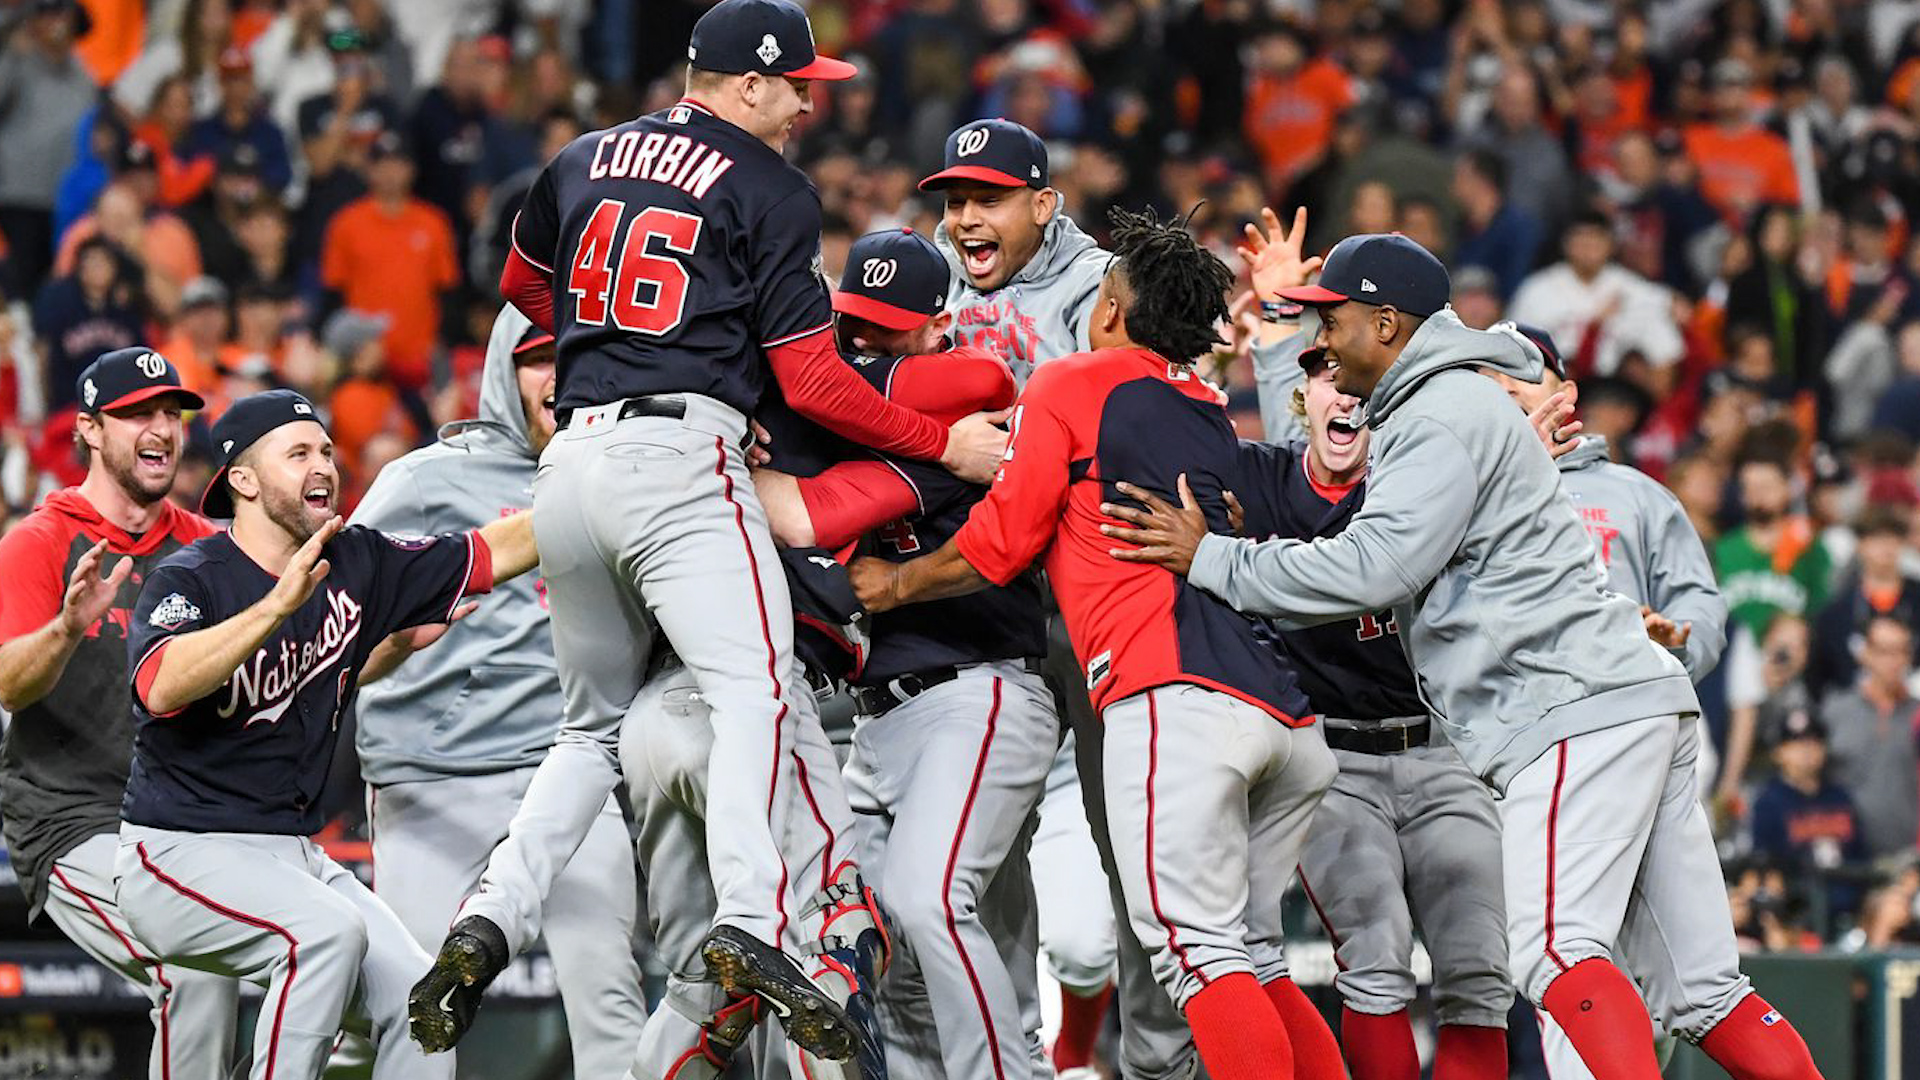 The Nats' Improbable Run to the World Series Title